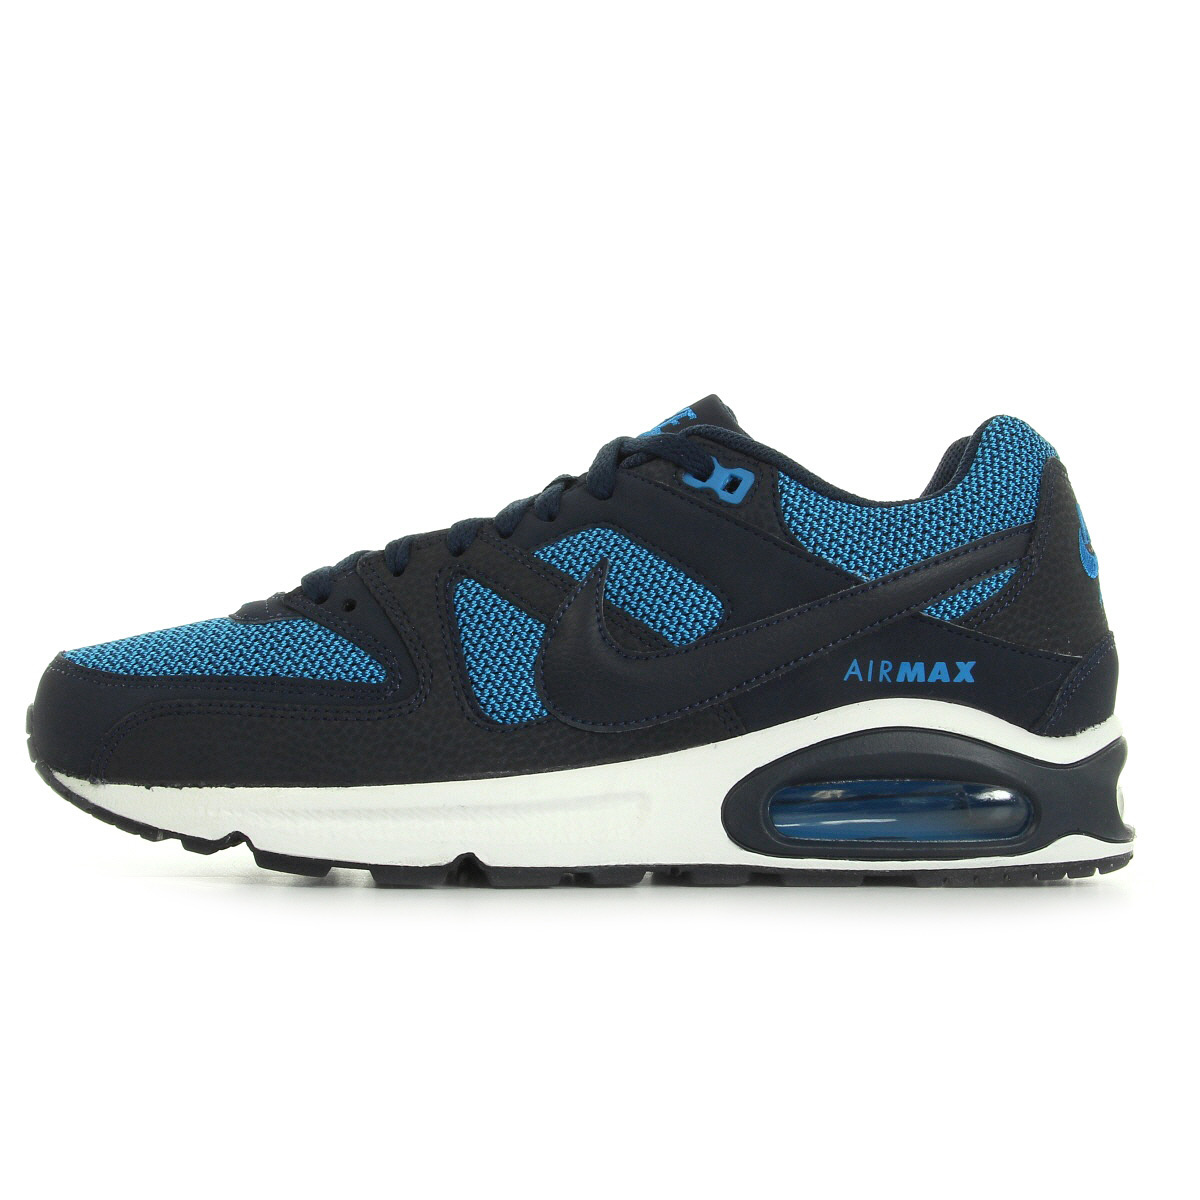 schuhe nike herren air max command blau ebay. Black Bedroom Furniture Sets. Home Design Ideas